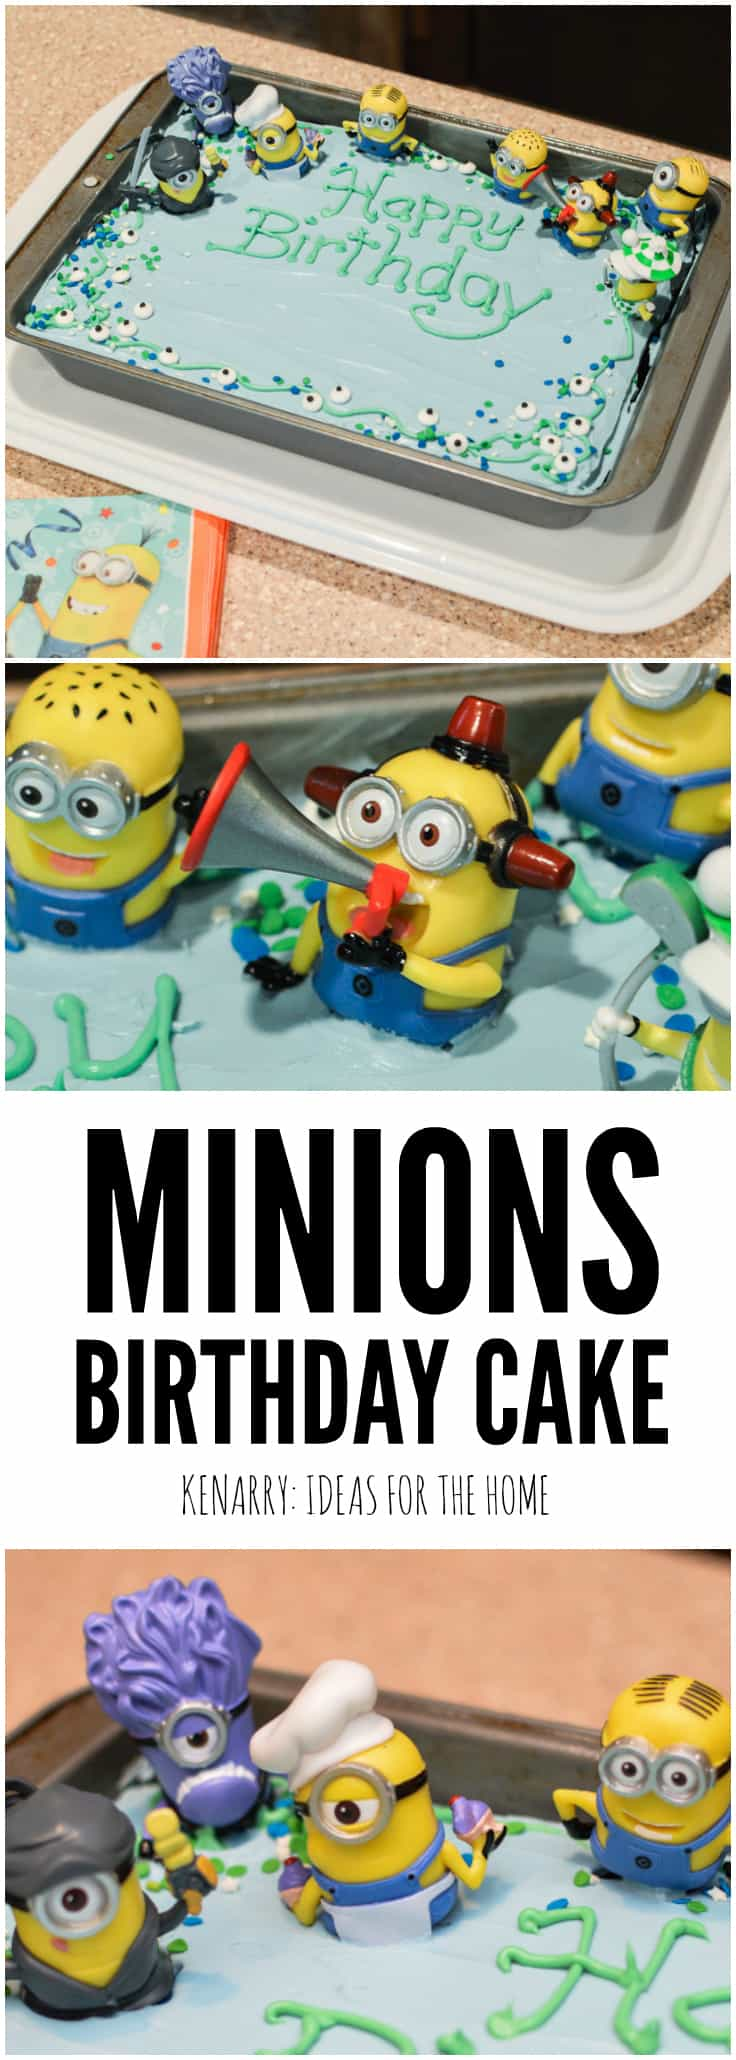 Does your child love the hilarious Minions from the Despicable Me movies? Learn how to make a super easy Minions Birthday Cake for a kid's party with this cake decorating tutorial.